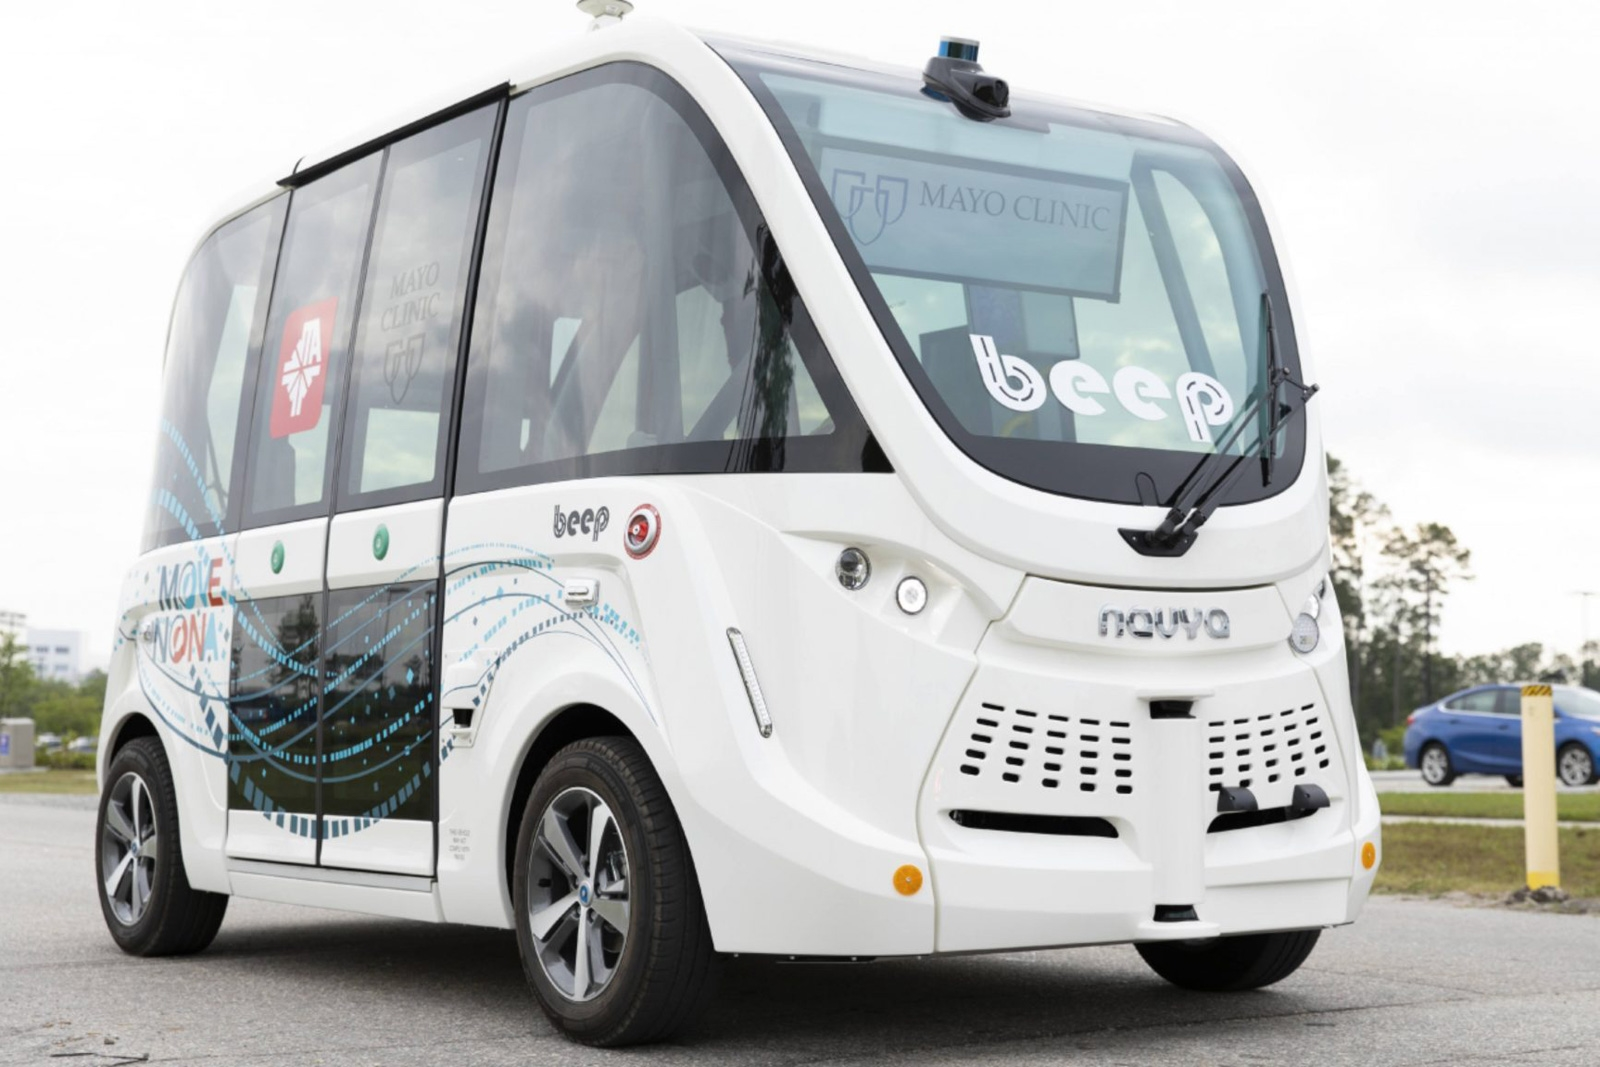 Self-driving shuttles are ferrying COVID-19 tests at a Florida clinic | DeviceDaily.com